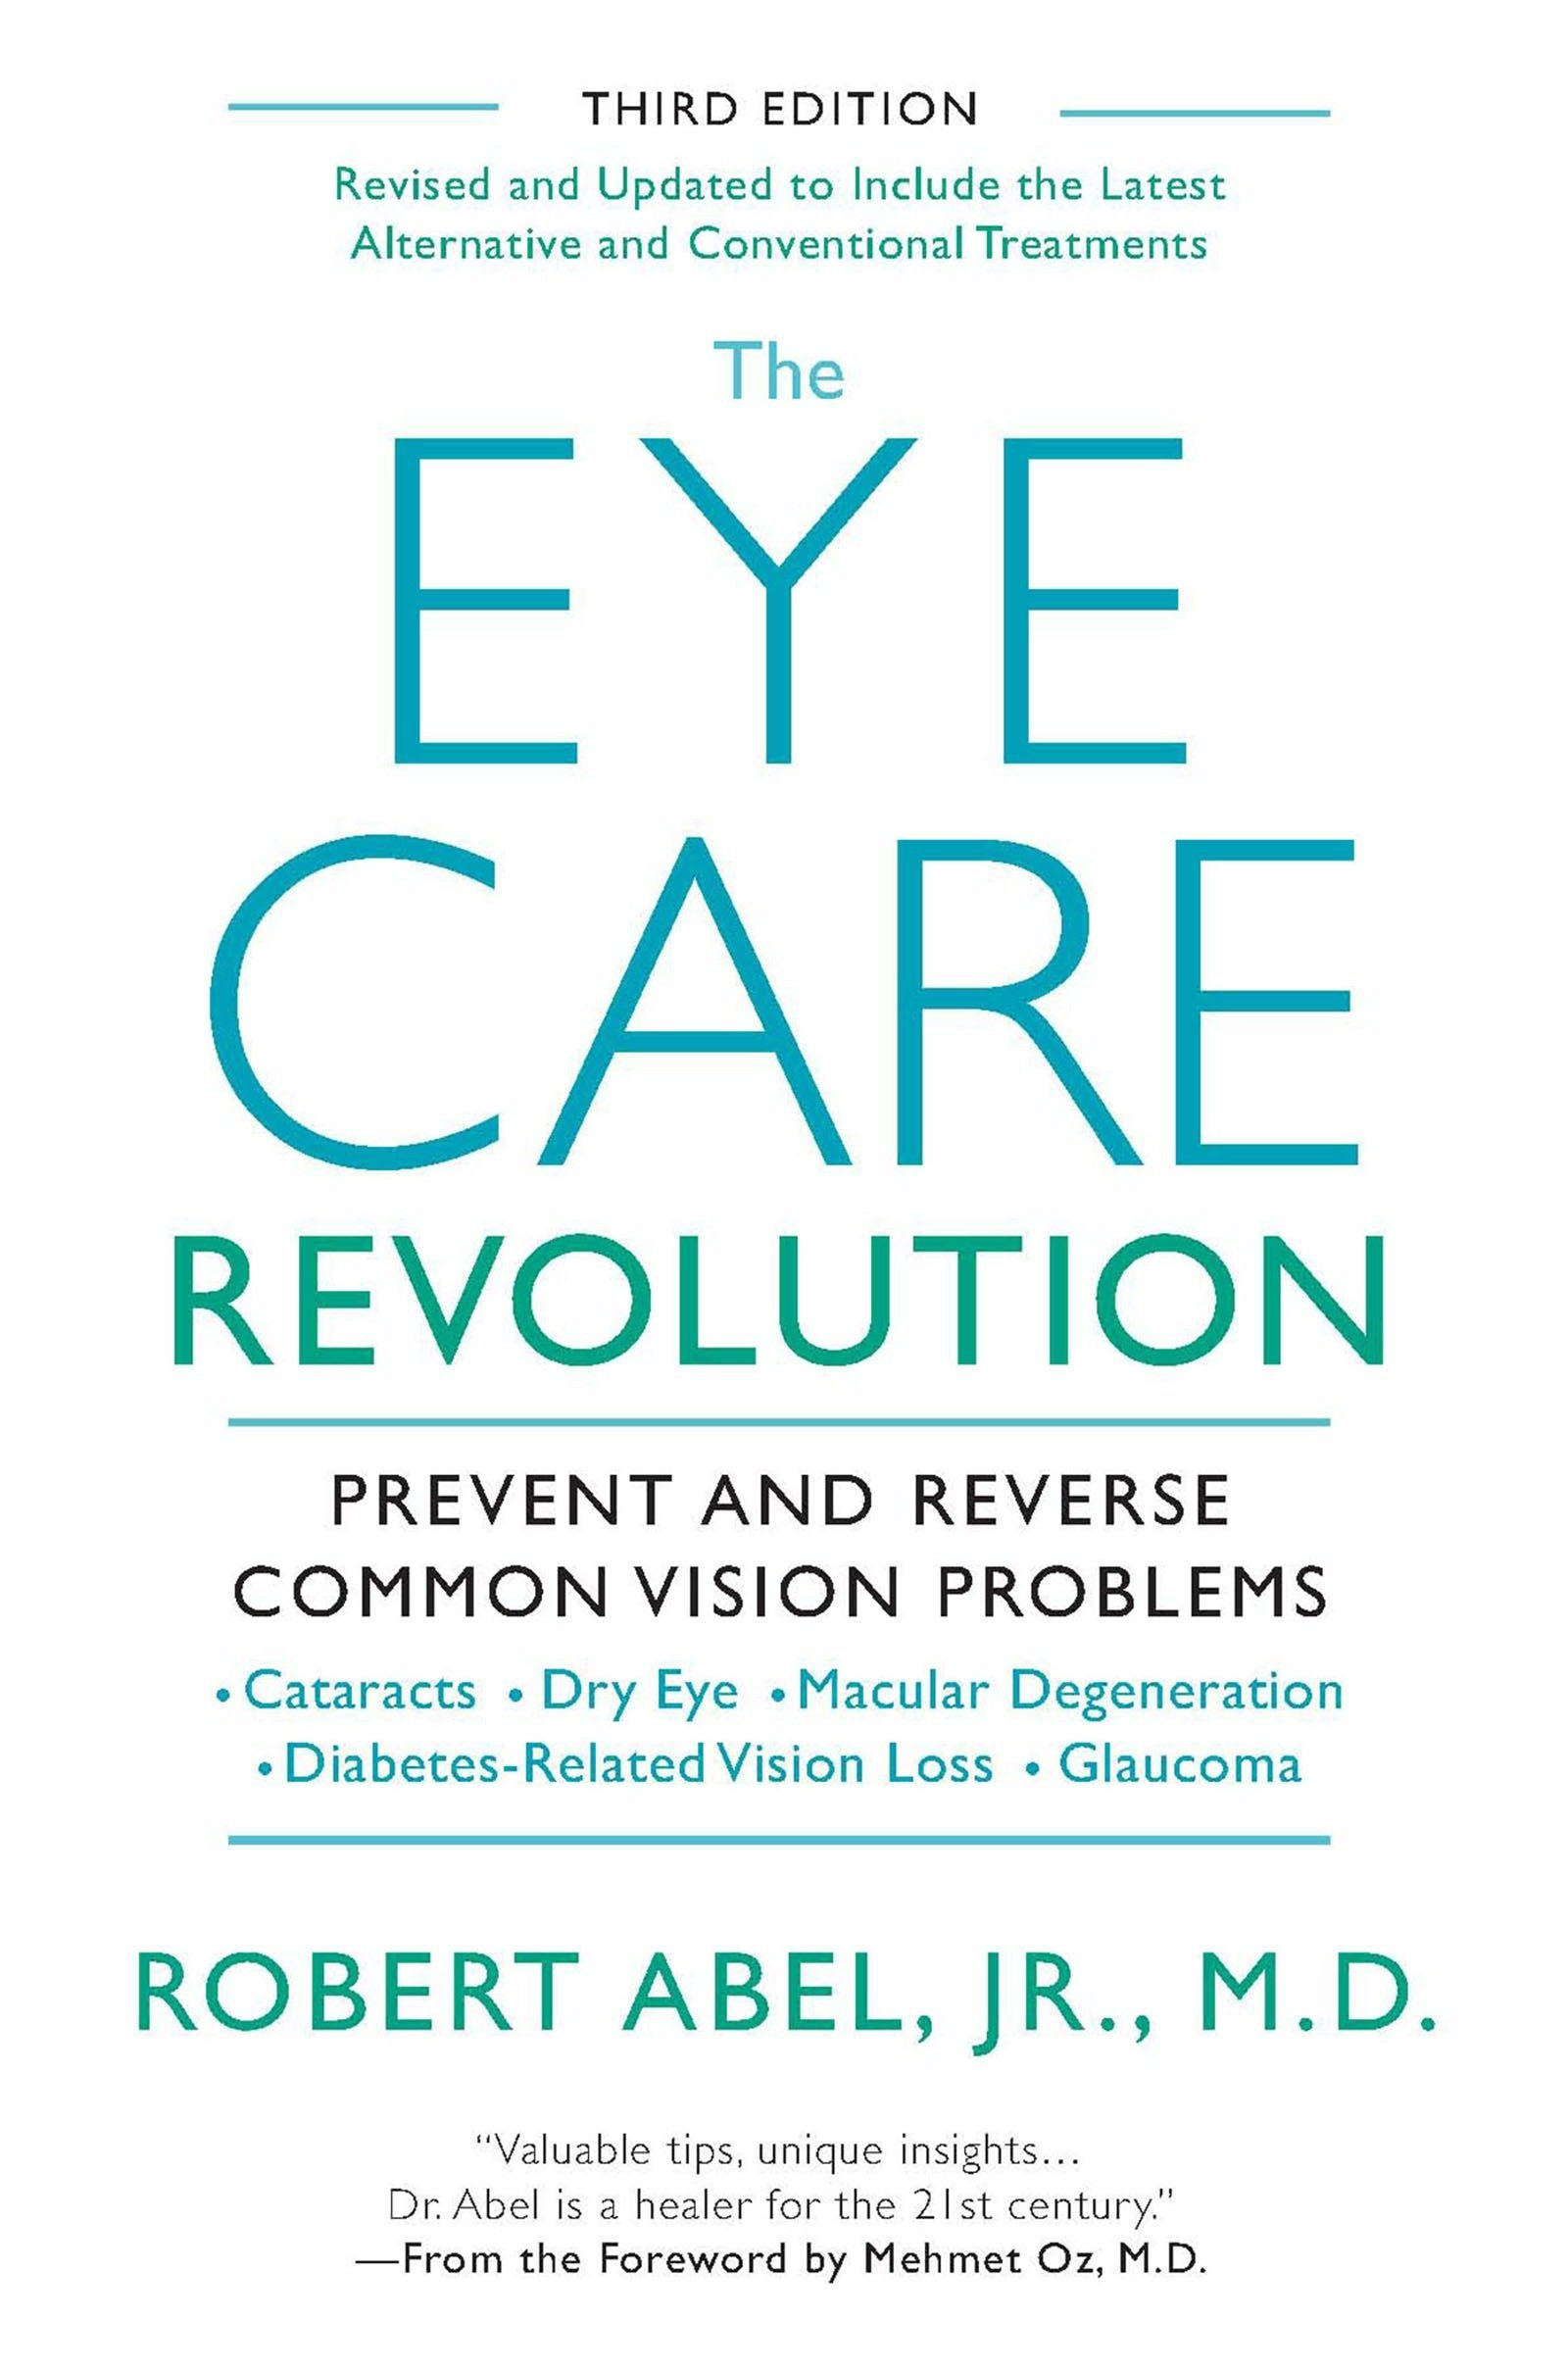 The Eye Care Revolution: Prevent And Reverse Common Vision Problems, Revised And Updated Paperback – April 29, 2014 Robert Abel Mehmet Oz Kensington 0758293712